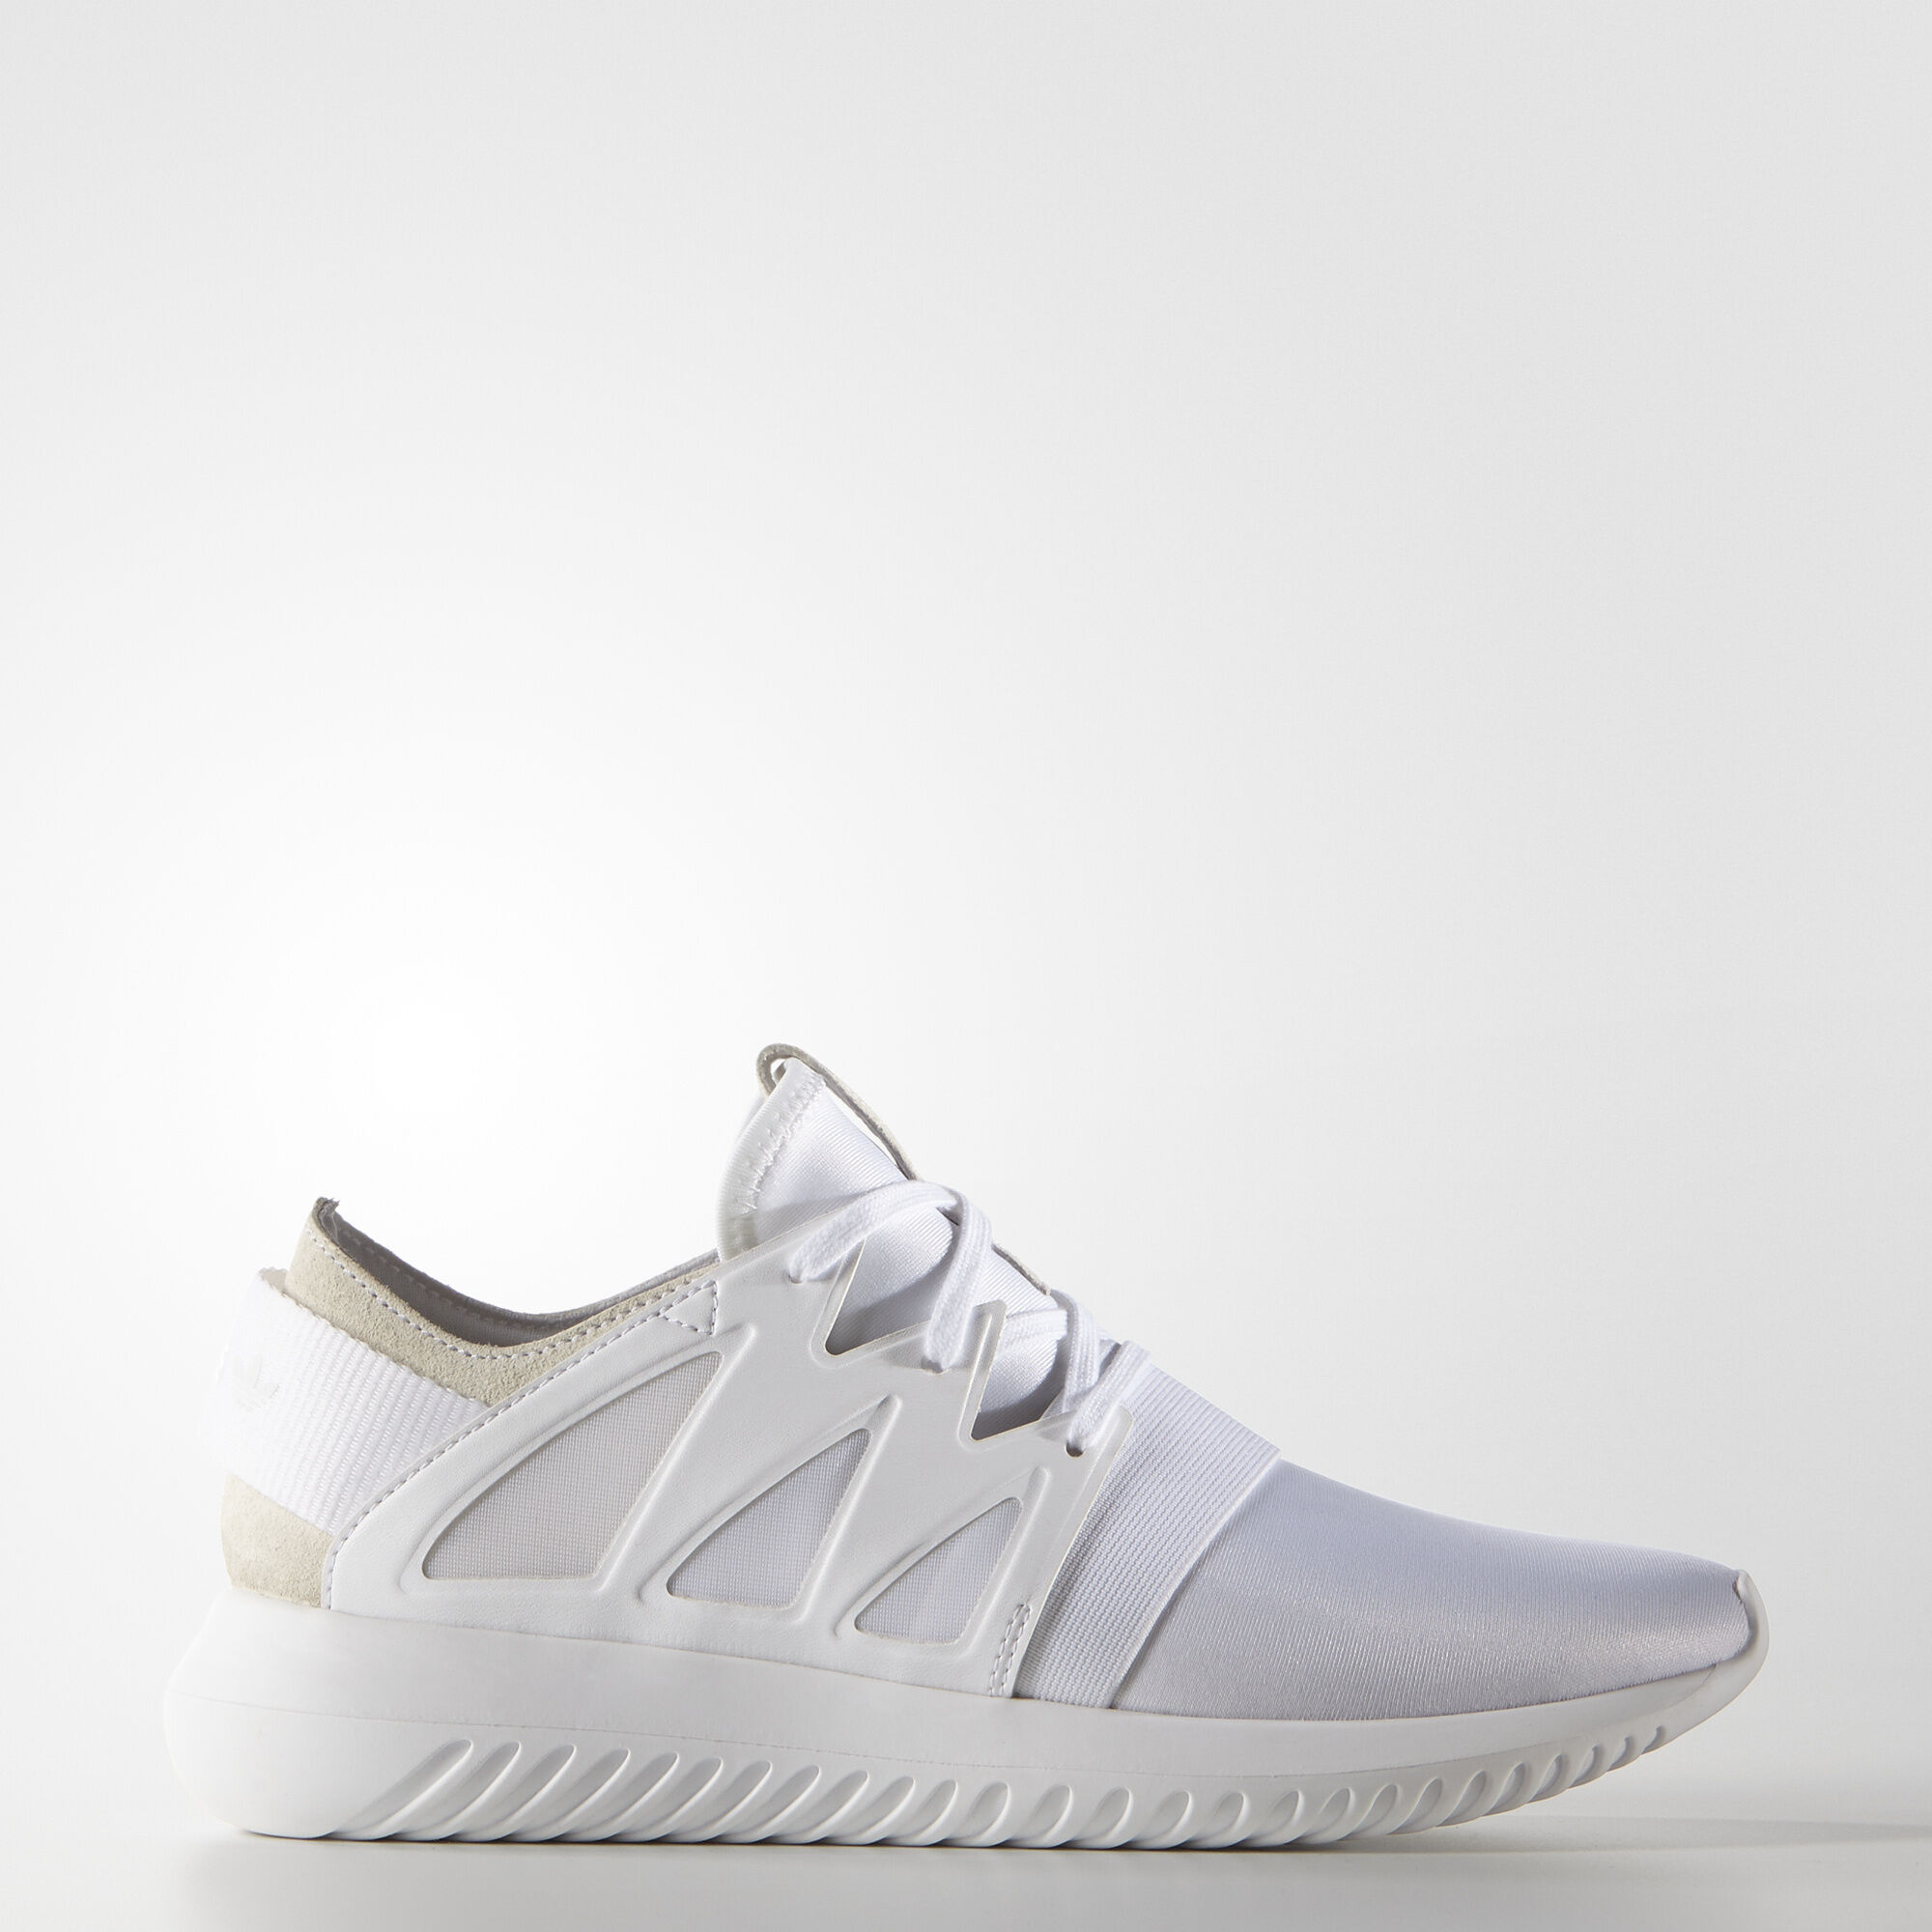 Adidas Tubular White Men